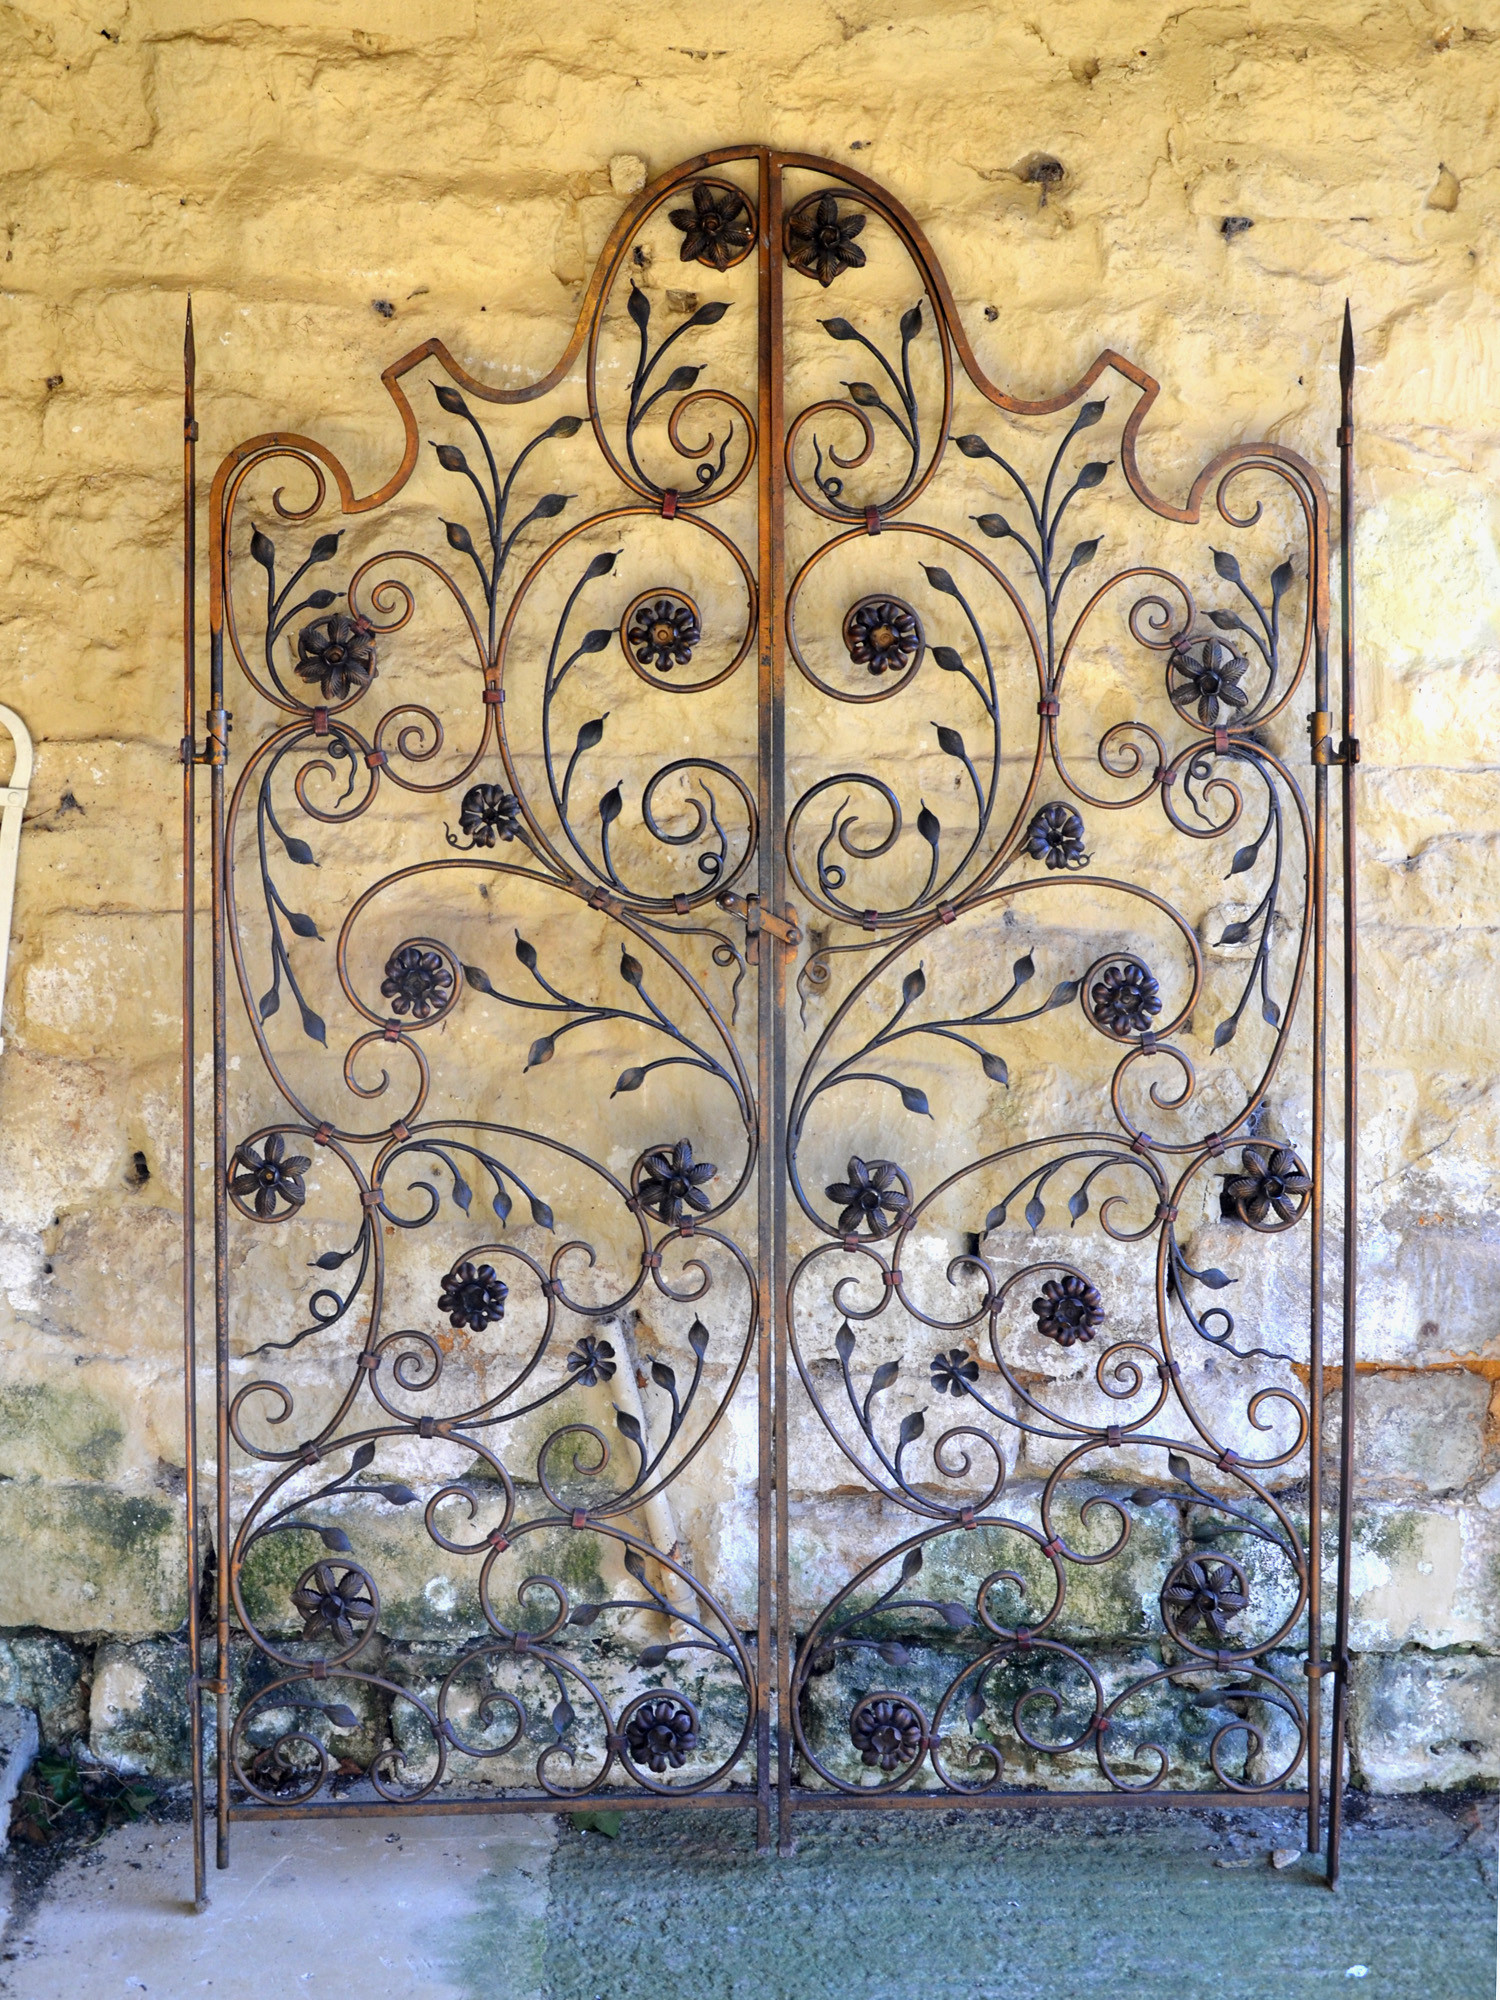 A pair of decorative ironwork gates